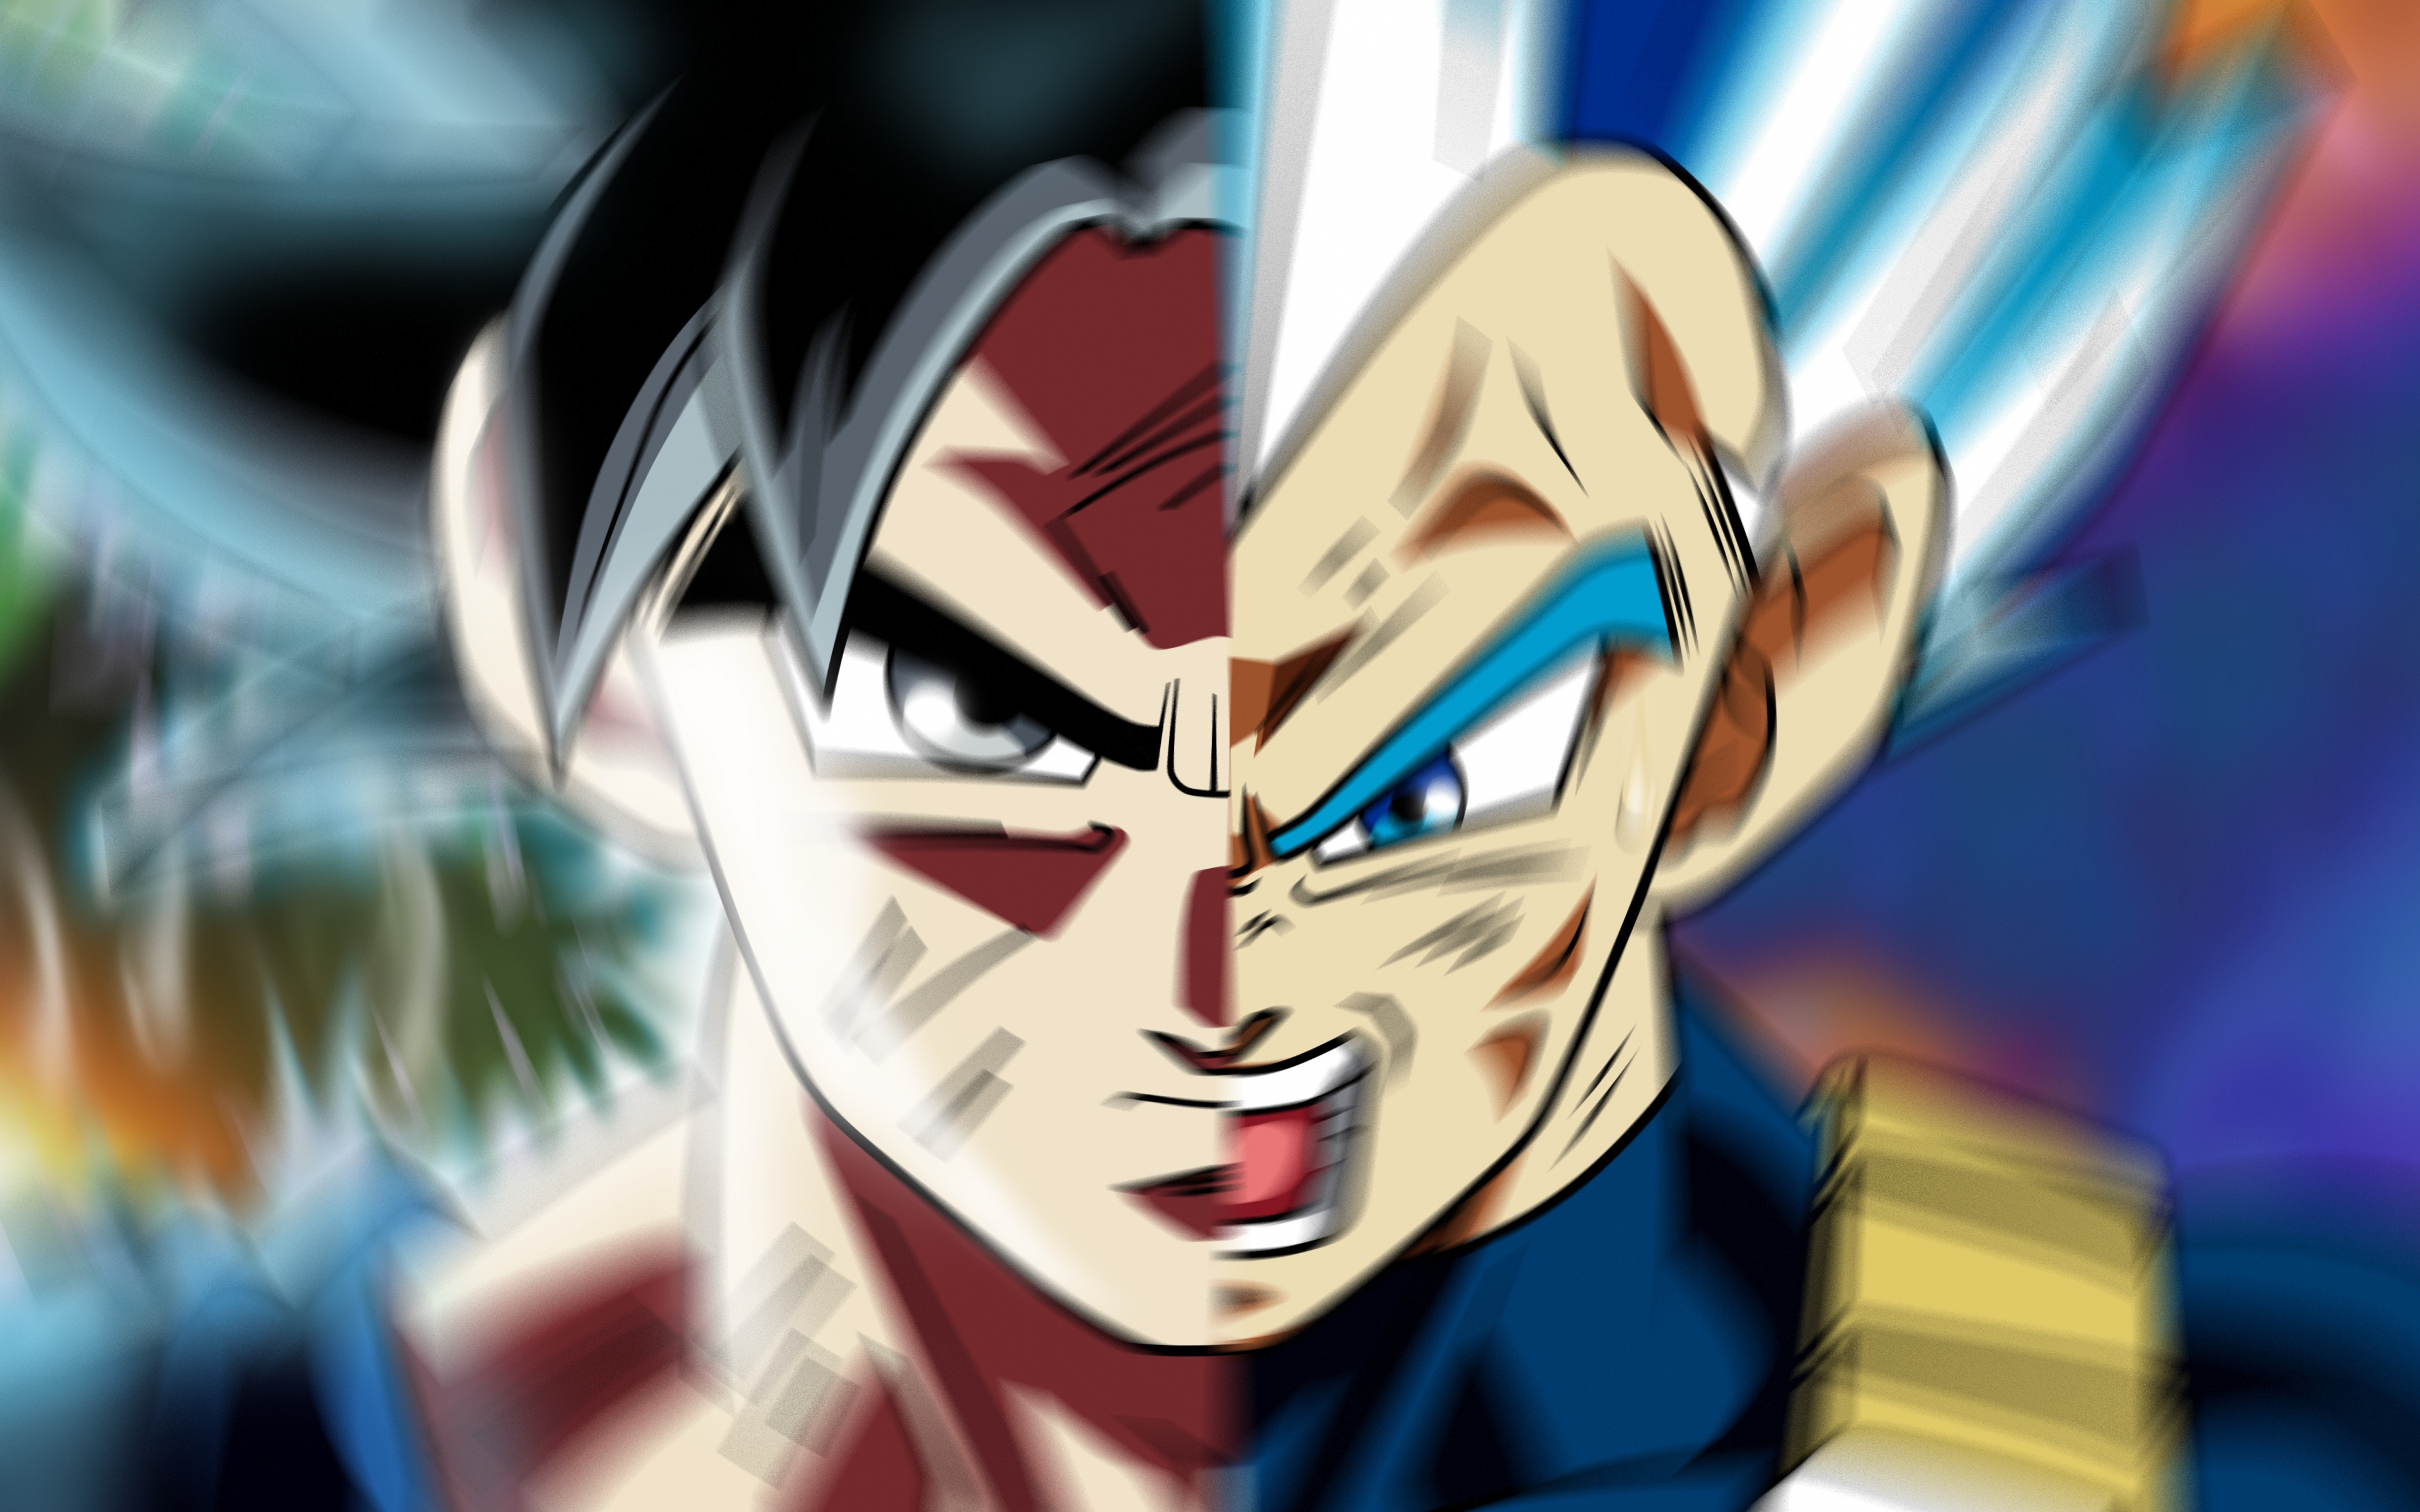 Download 3840x2400 Wallpaper Face Off Goku And Vegeta